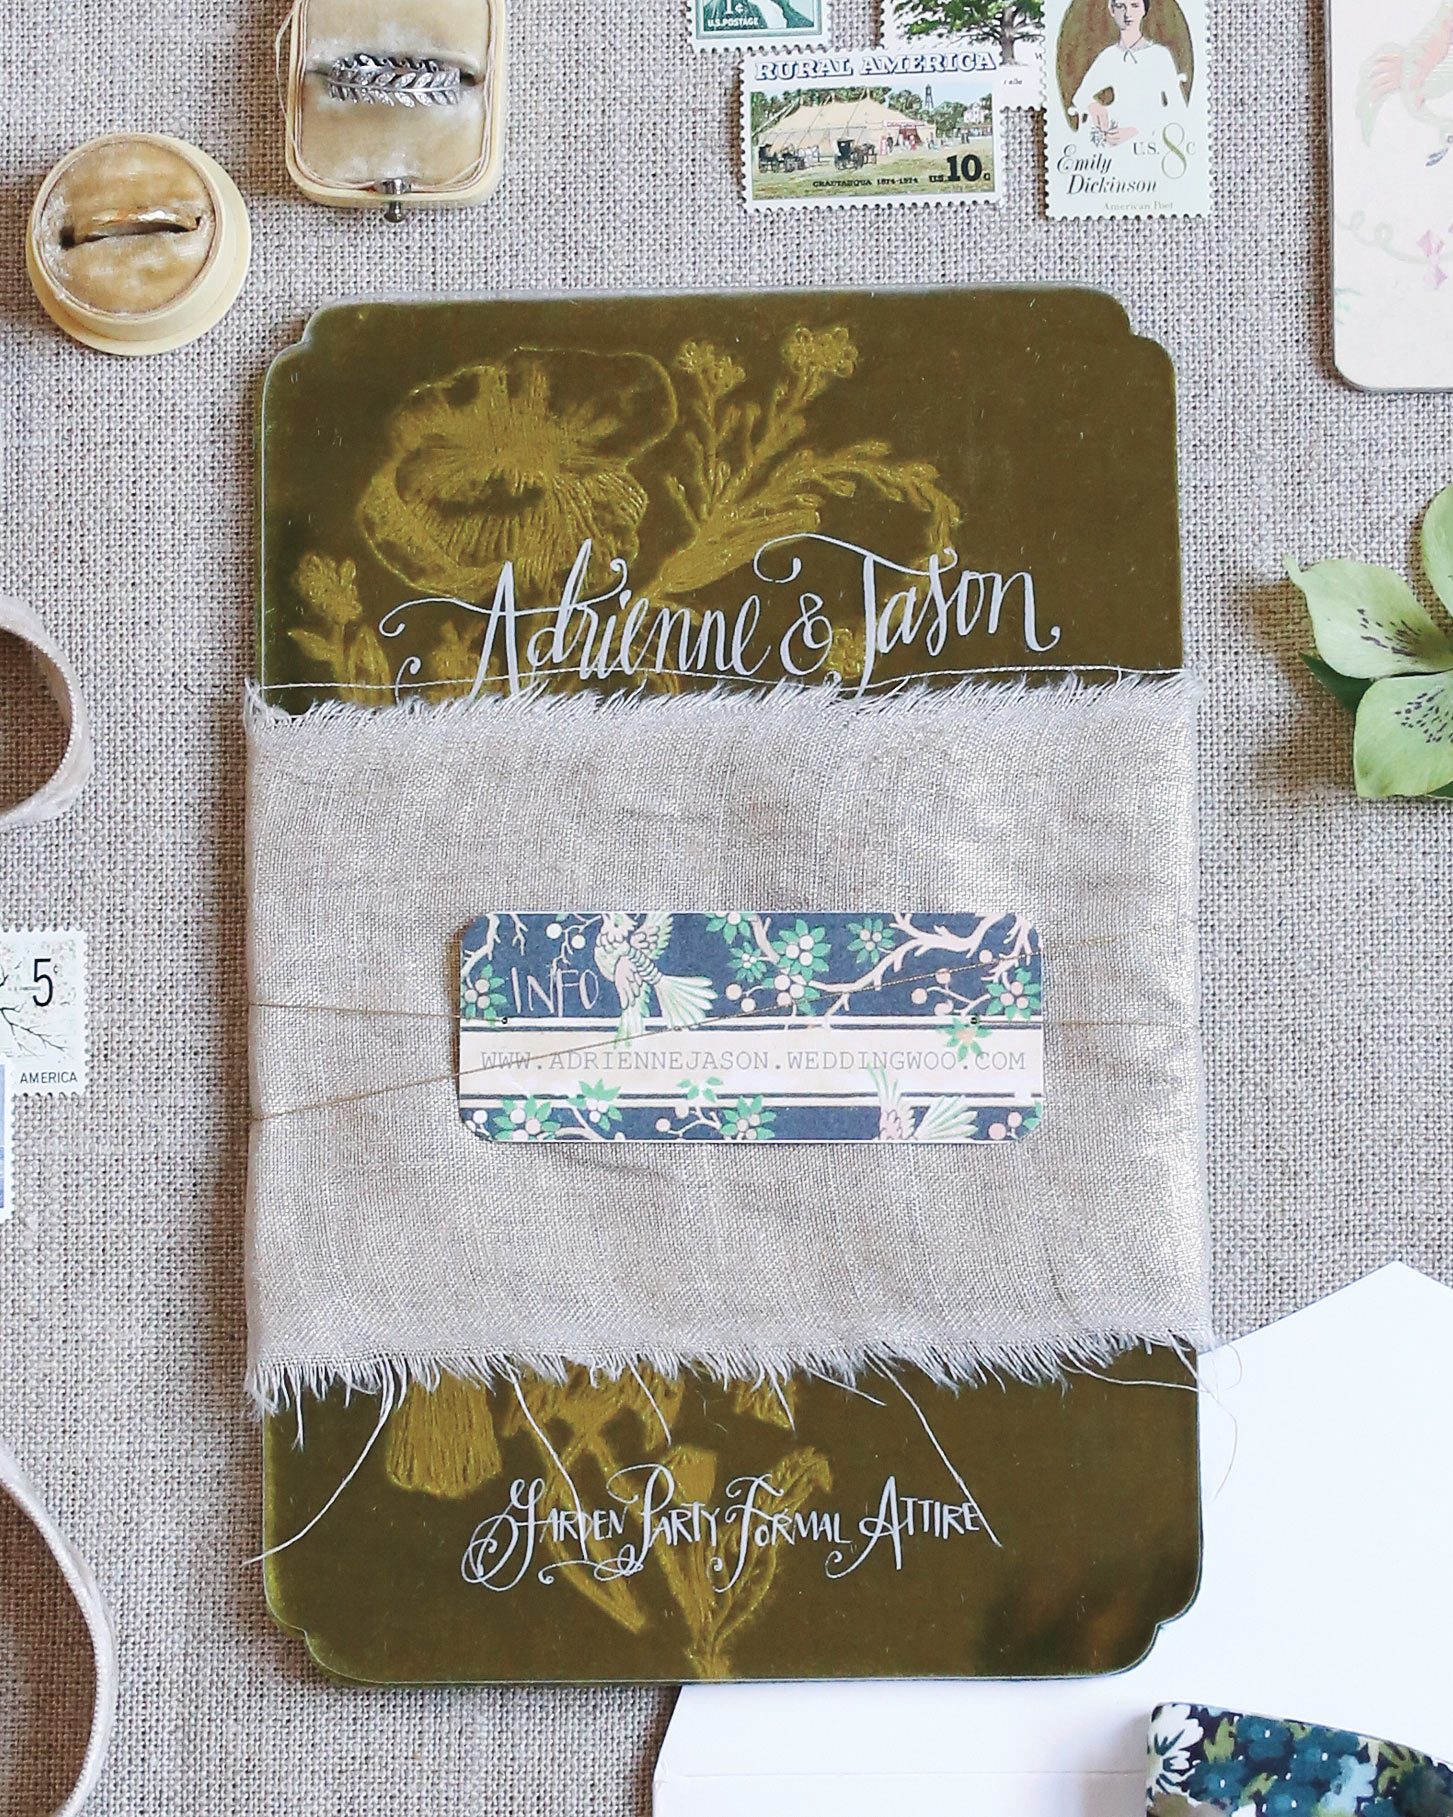 adrienne-jason-wedding-minnesota-invitation-suite-0338-s111925.jpg